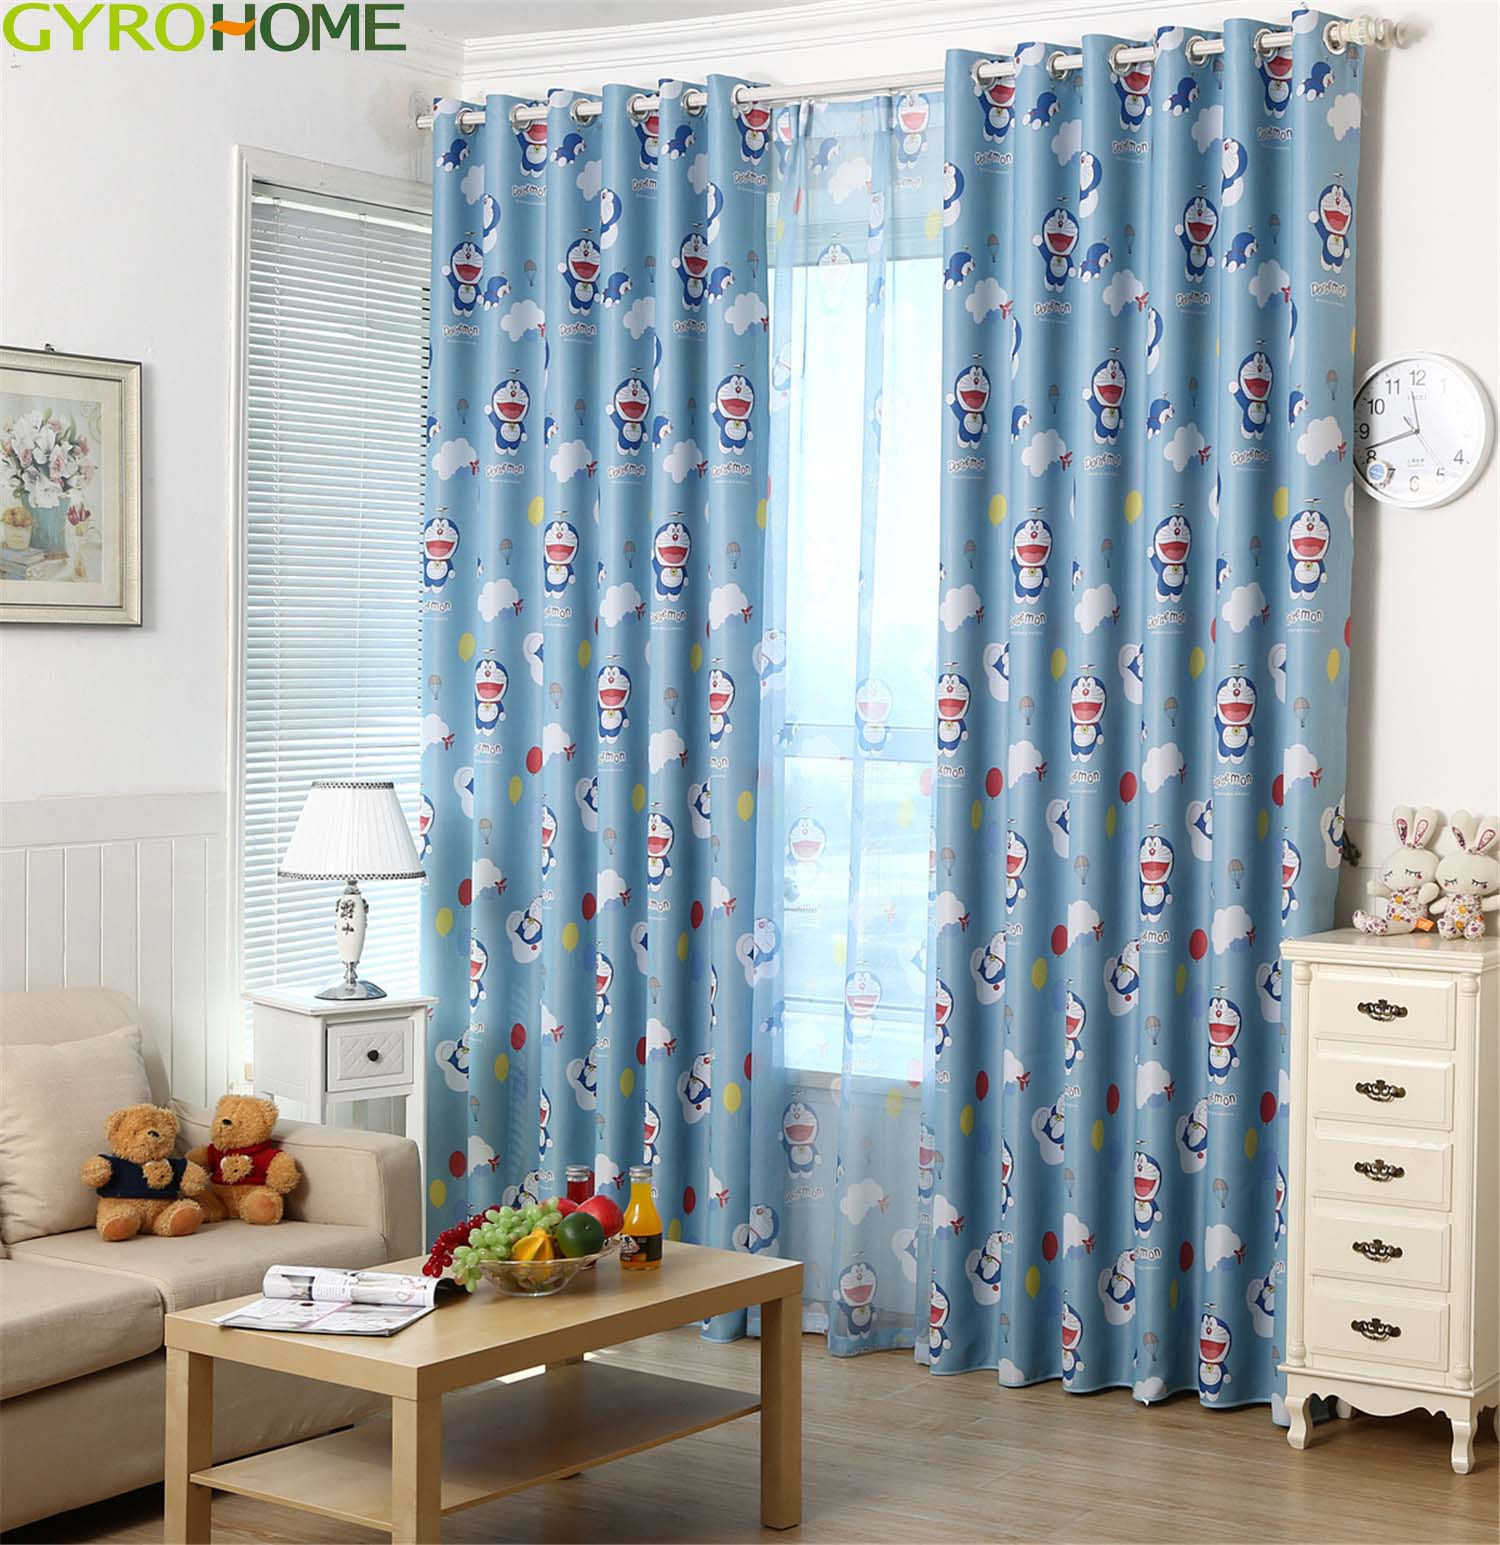 Cartoon Cat Printed Blackout Curtain for Children room Polyester High Quality Environmental Blue Living Room Window Drapes|Curtains| |  - title=